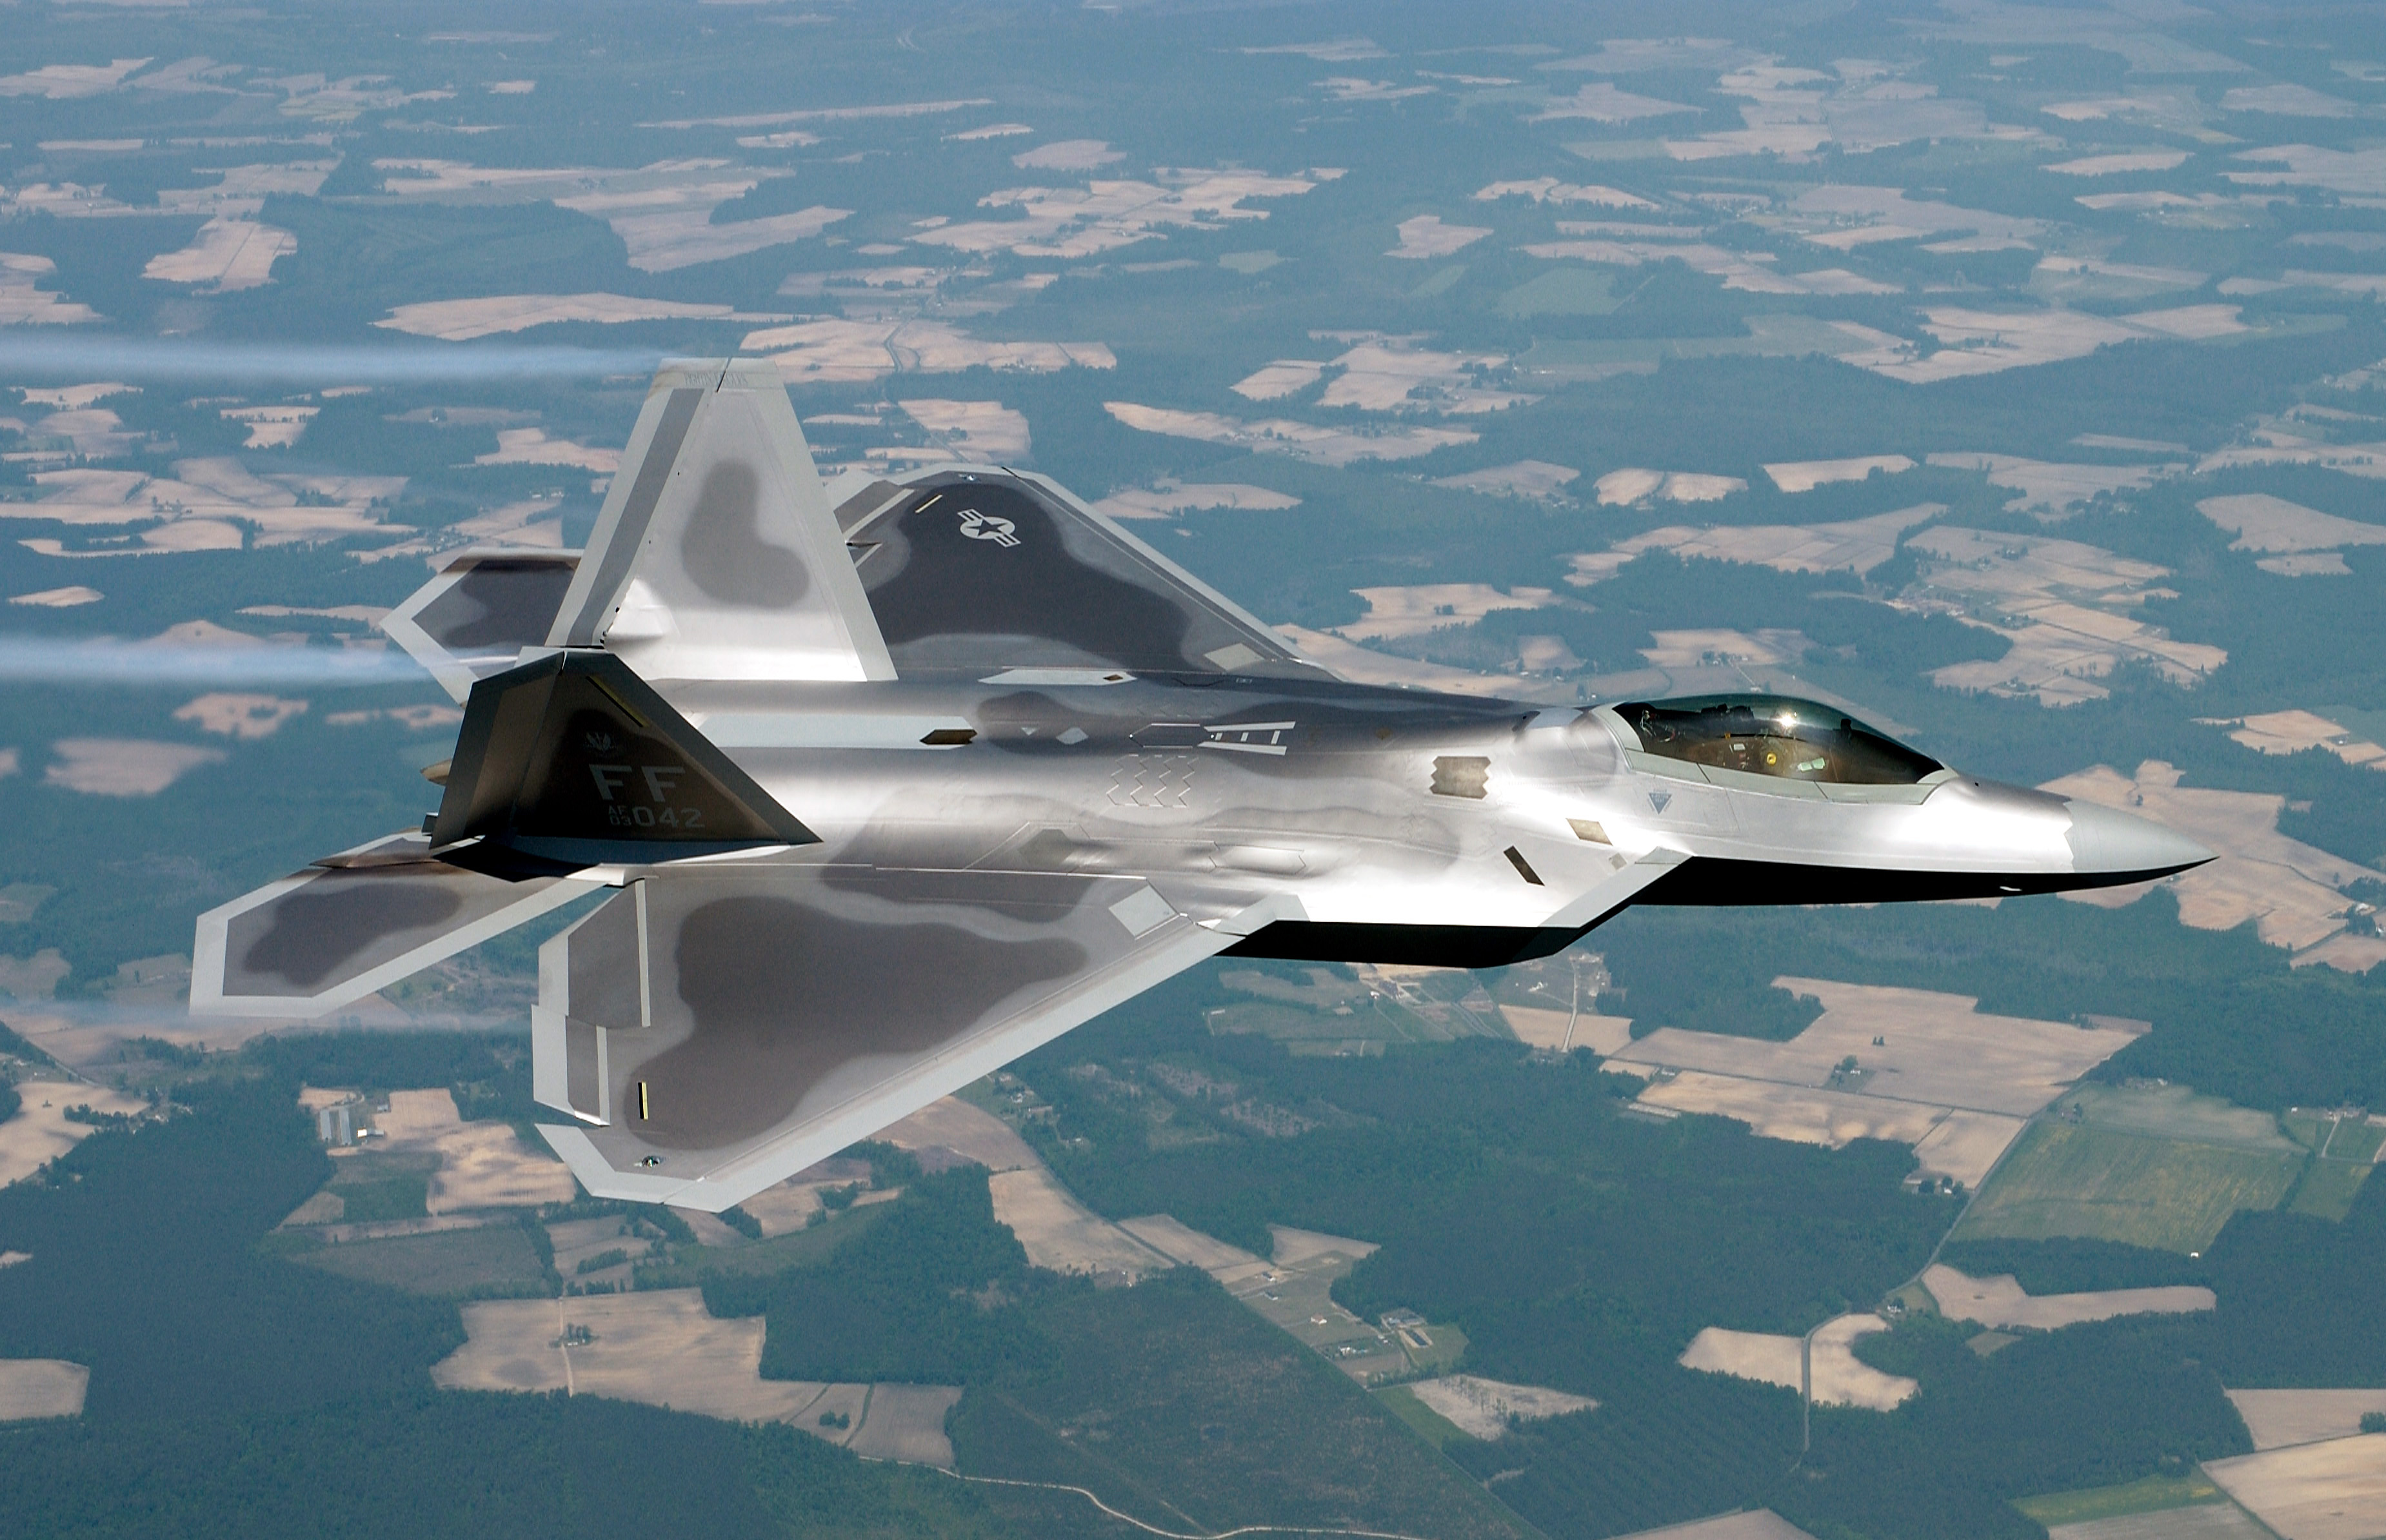 Aircraft military F-22 Raptor